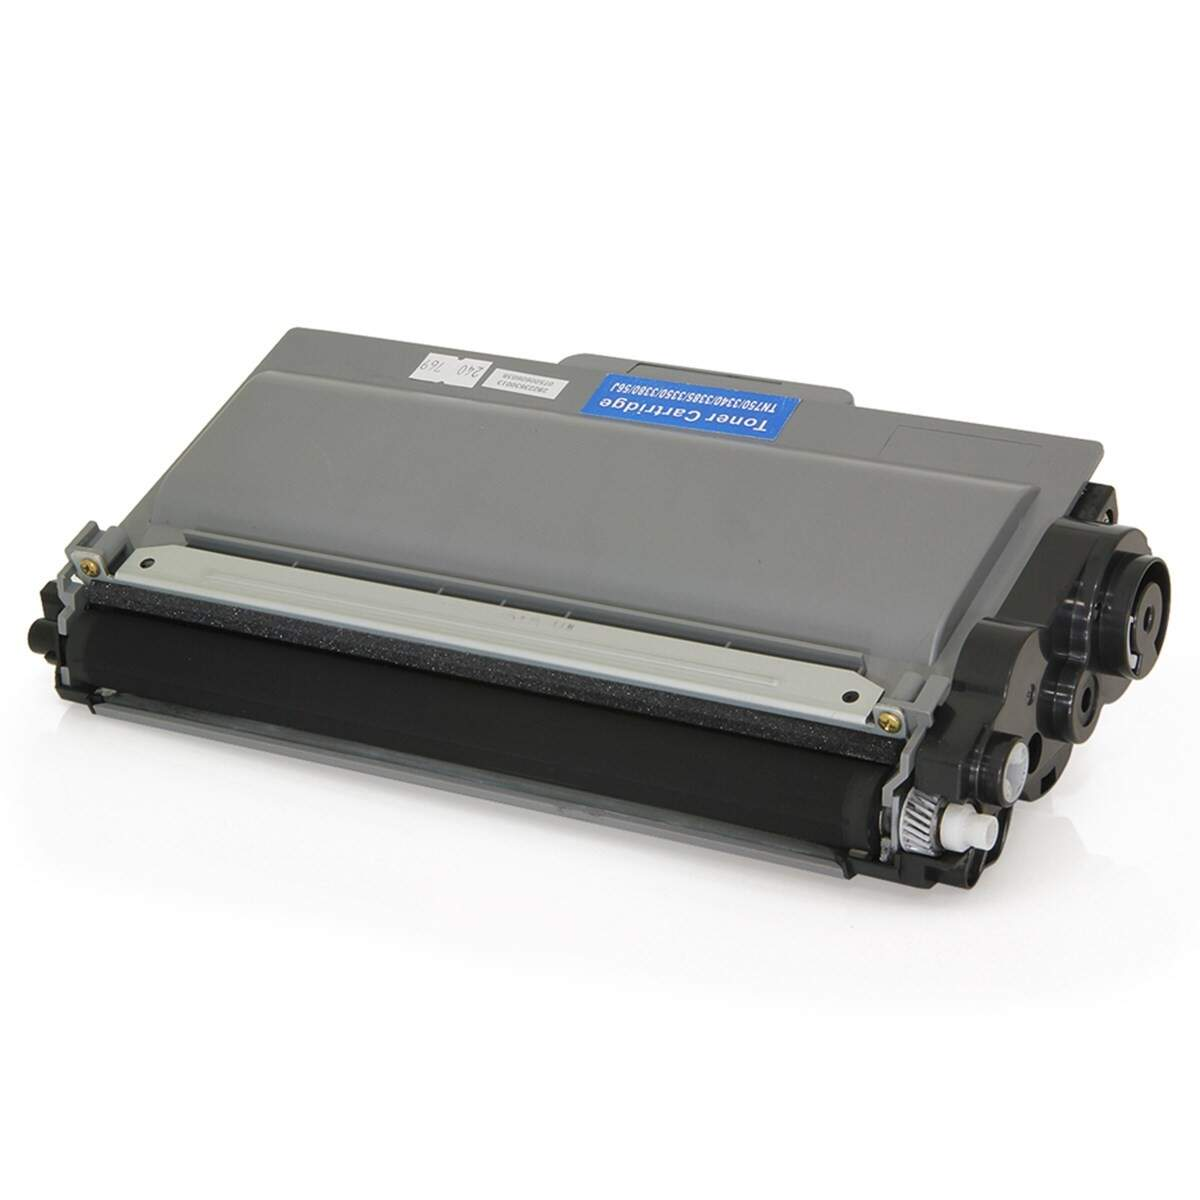 Toner Brother TN-3392 (TN-780) DCP-8157DN  MFC-8712  MFC-8912DW - 12.000 págs